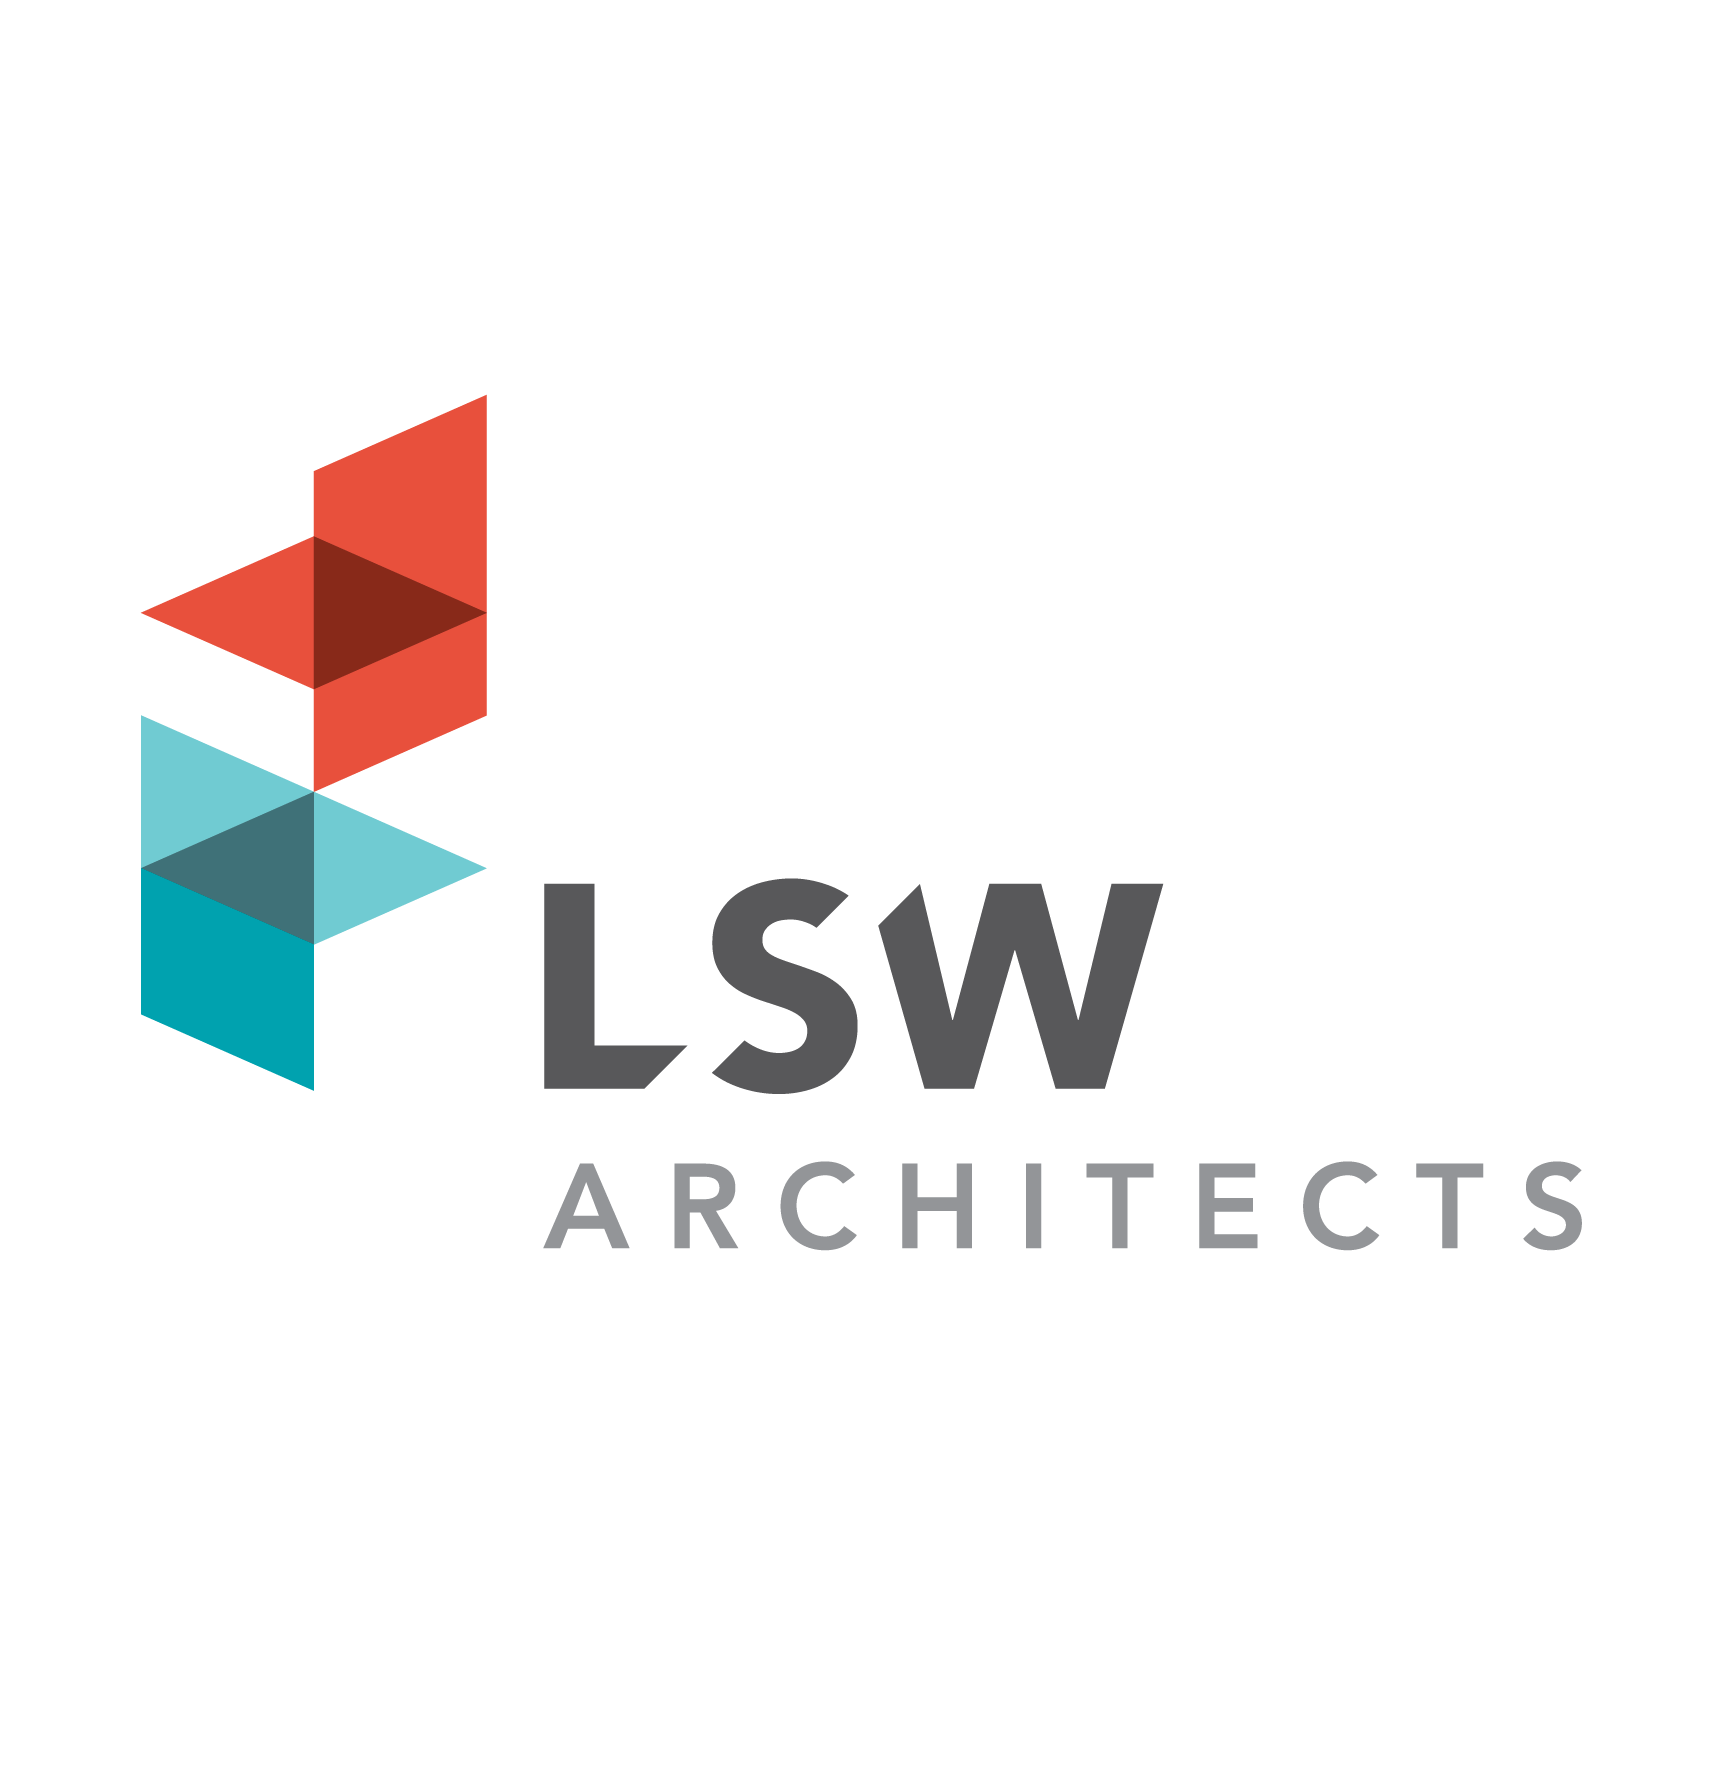 lsw architects